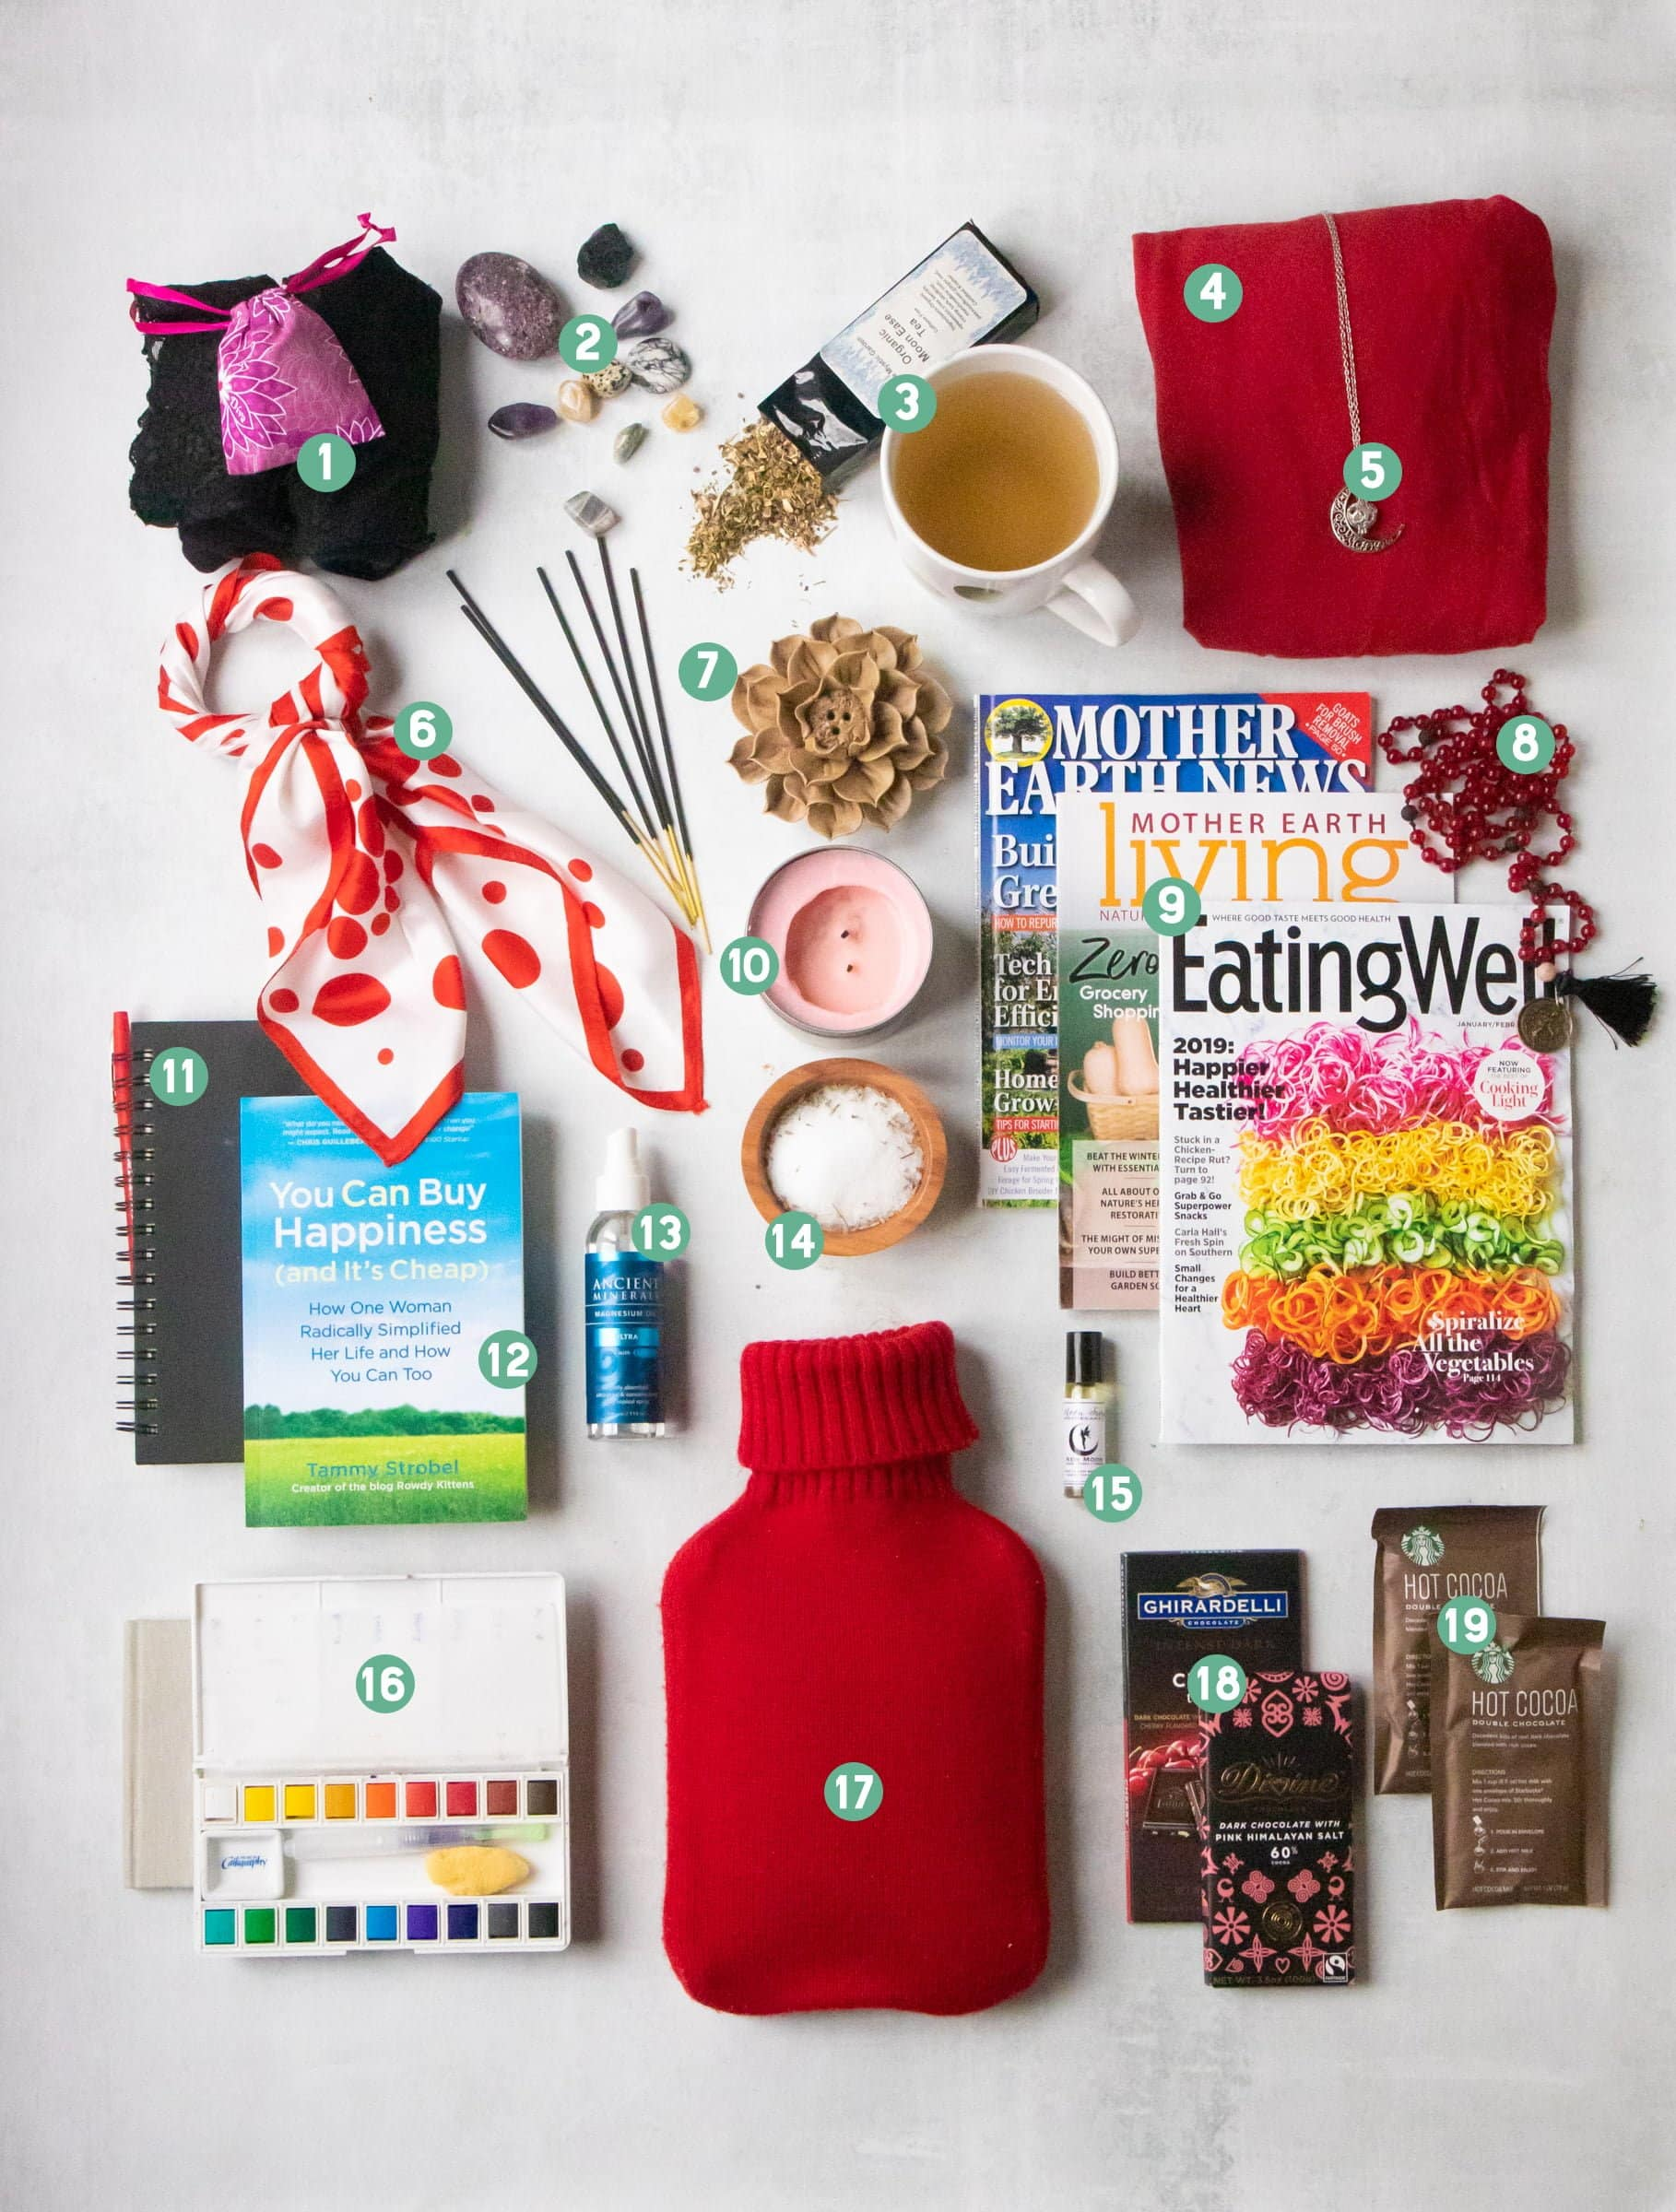 All the contents of a bleed box laid out and numbered - a menstrual cup, tea, crystals, a mala, magazines, art supplies, chocolate, a hot water bottle, a scarf, incense, and more.